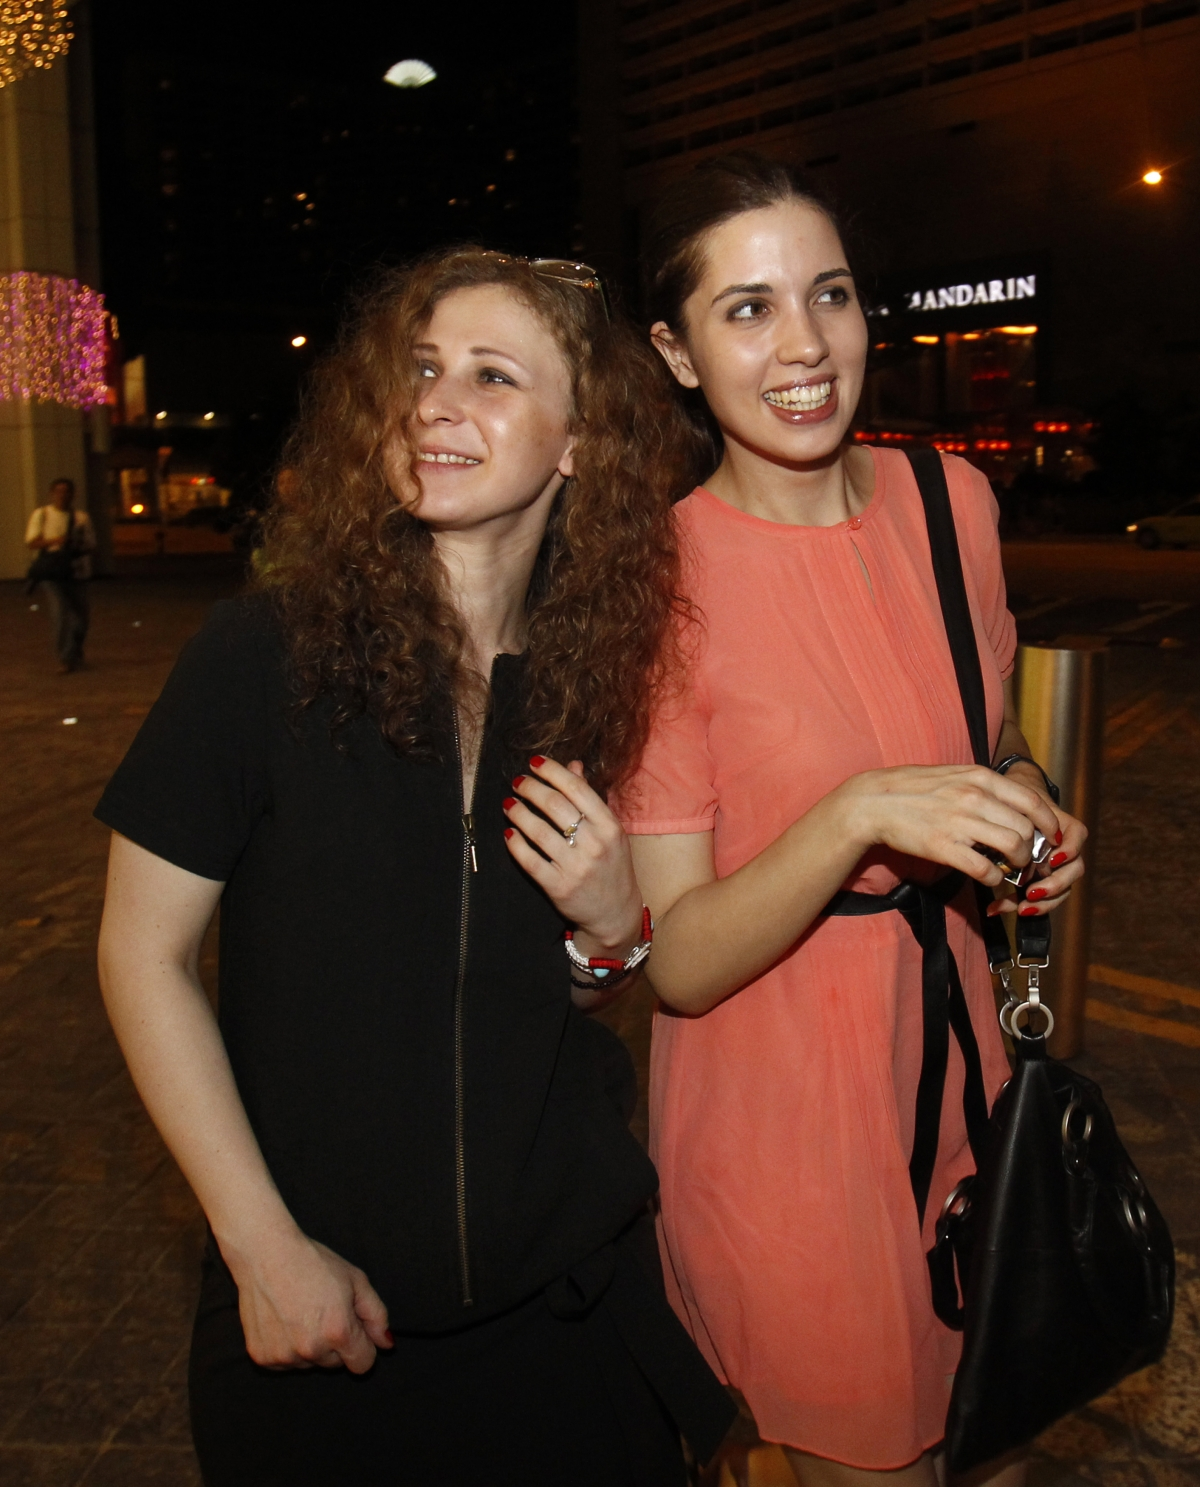 Members of Russian punk rock band Pussy Riot Nadezhda Tolokonnikova and Maria Alyokhina (L) arrive for the inaugural Prudential Eye Awards in Singapore